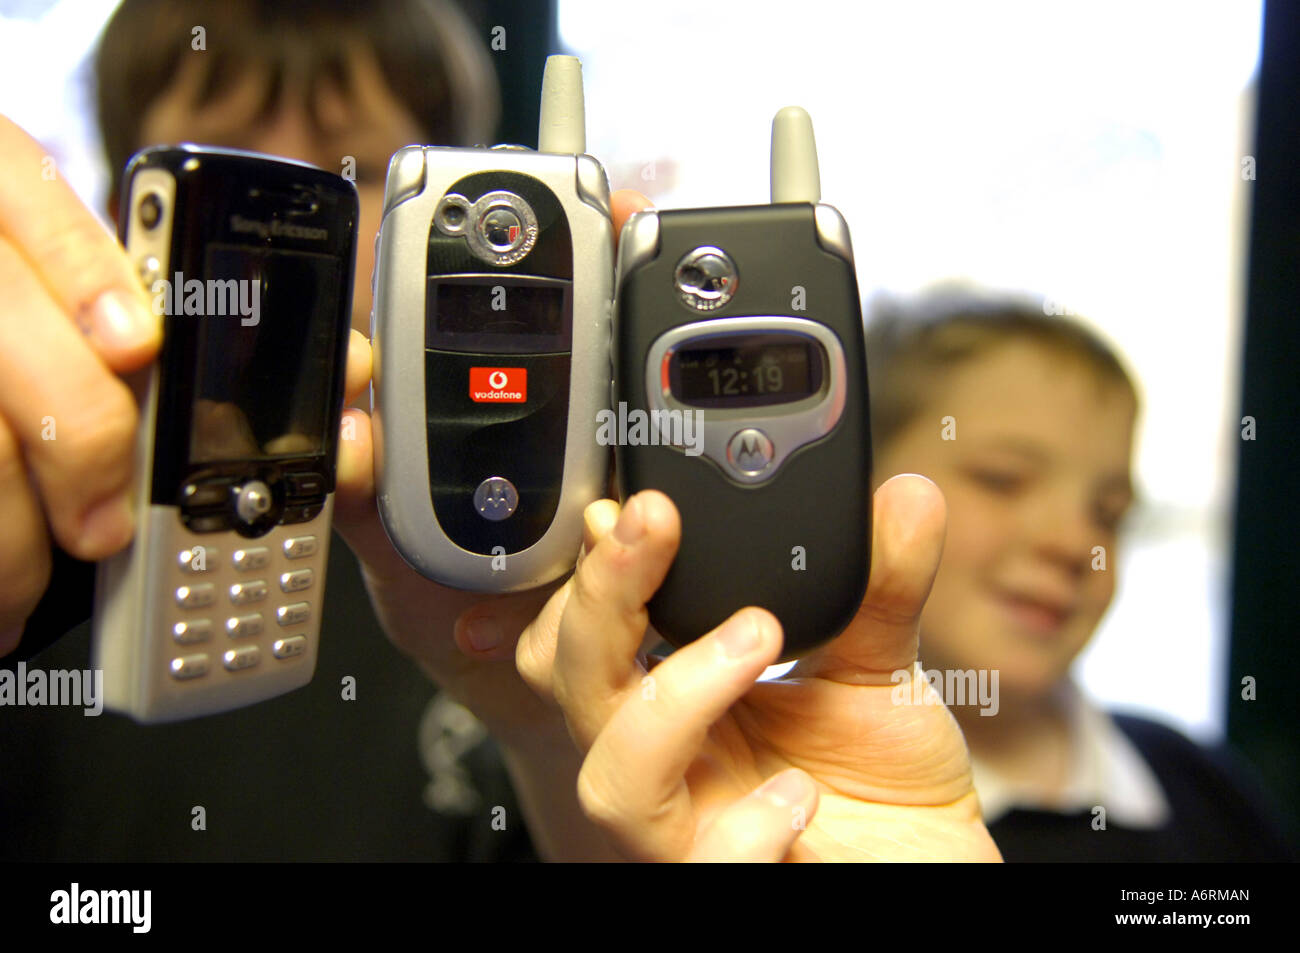 kids hold holding children school students youth young youngsters technology mobile phones cameraphones video record - Stock Image